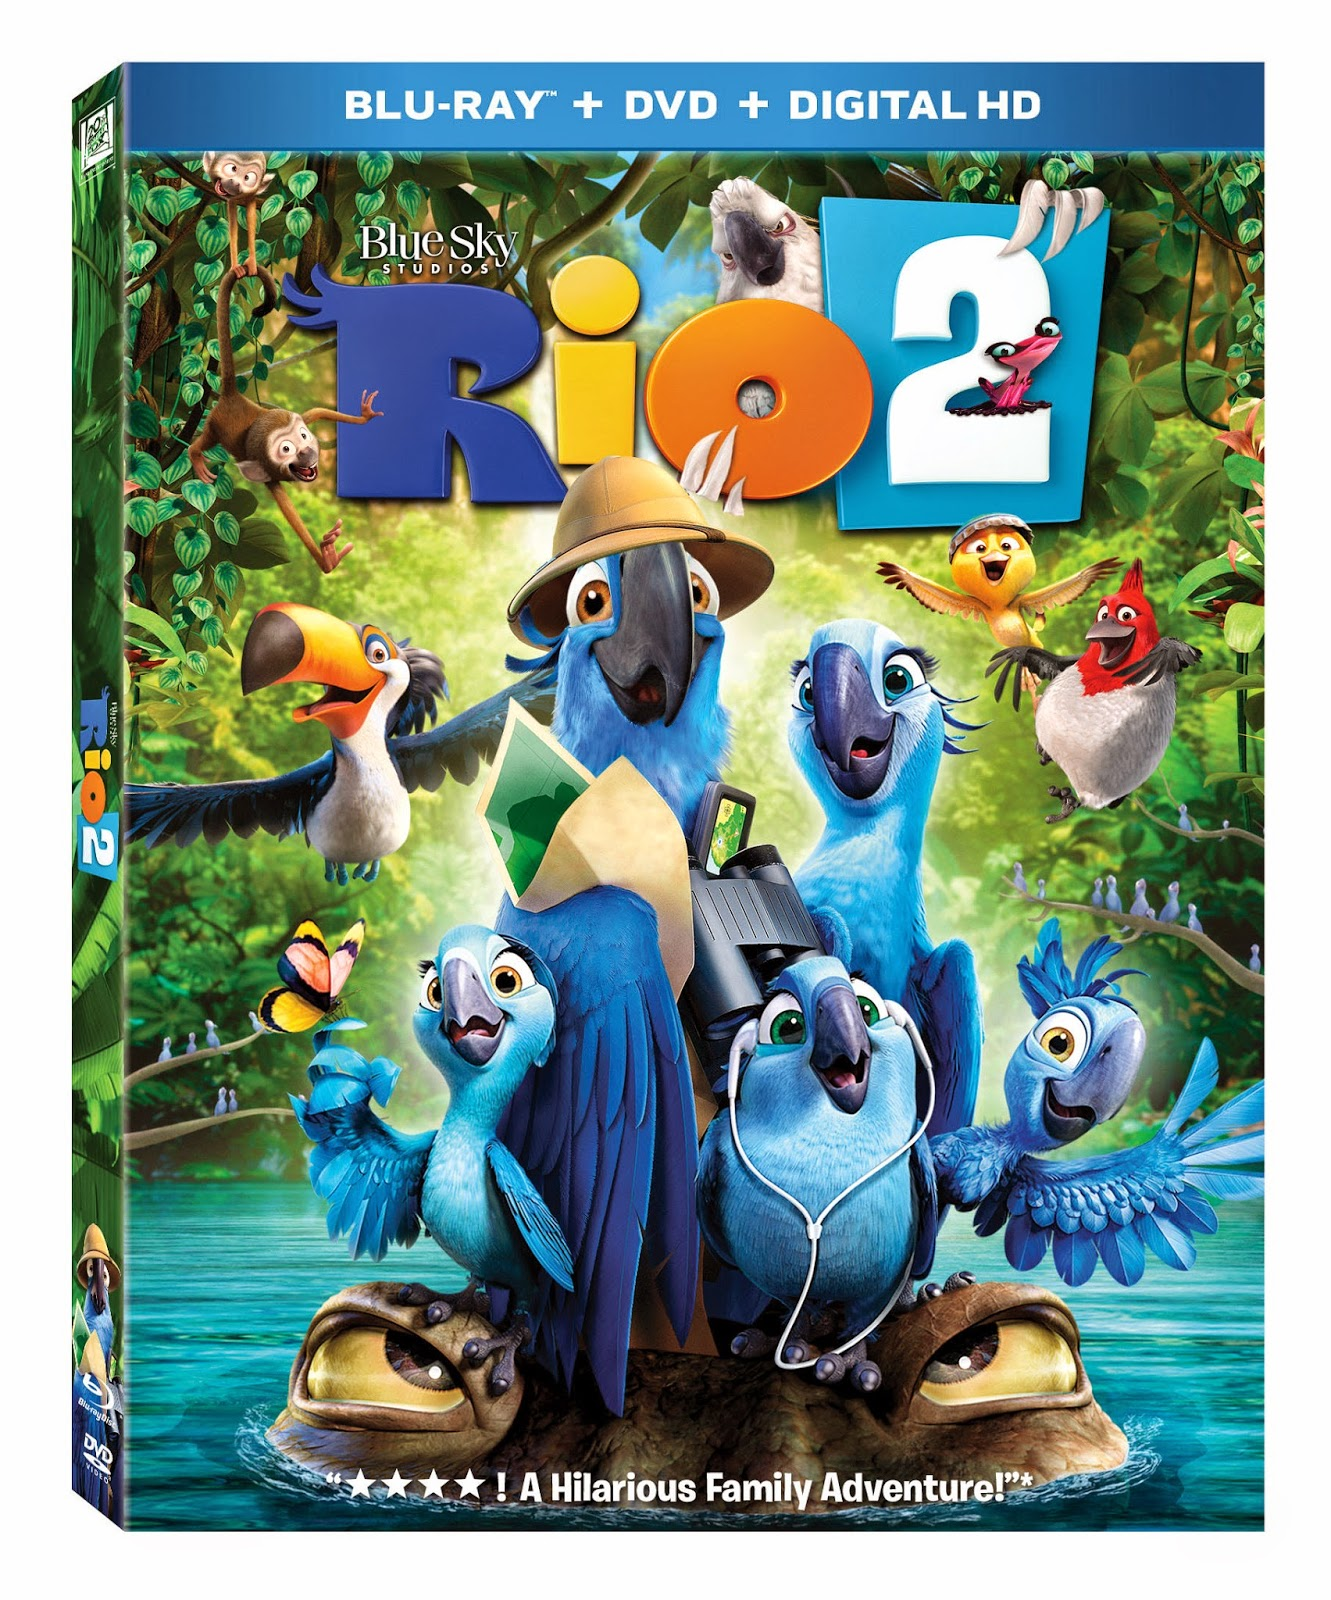 Rio 2 Blu-ray giveaway by Yes/No Films